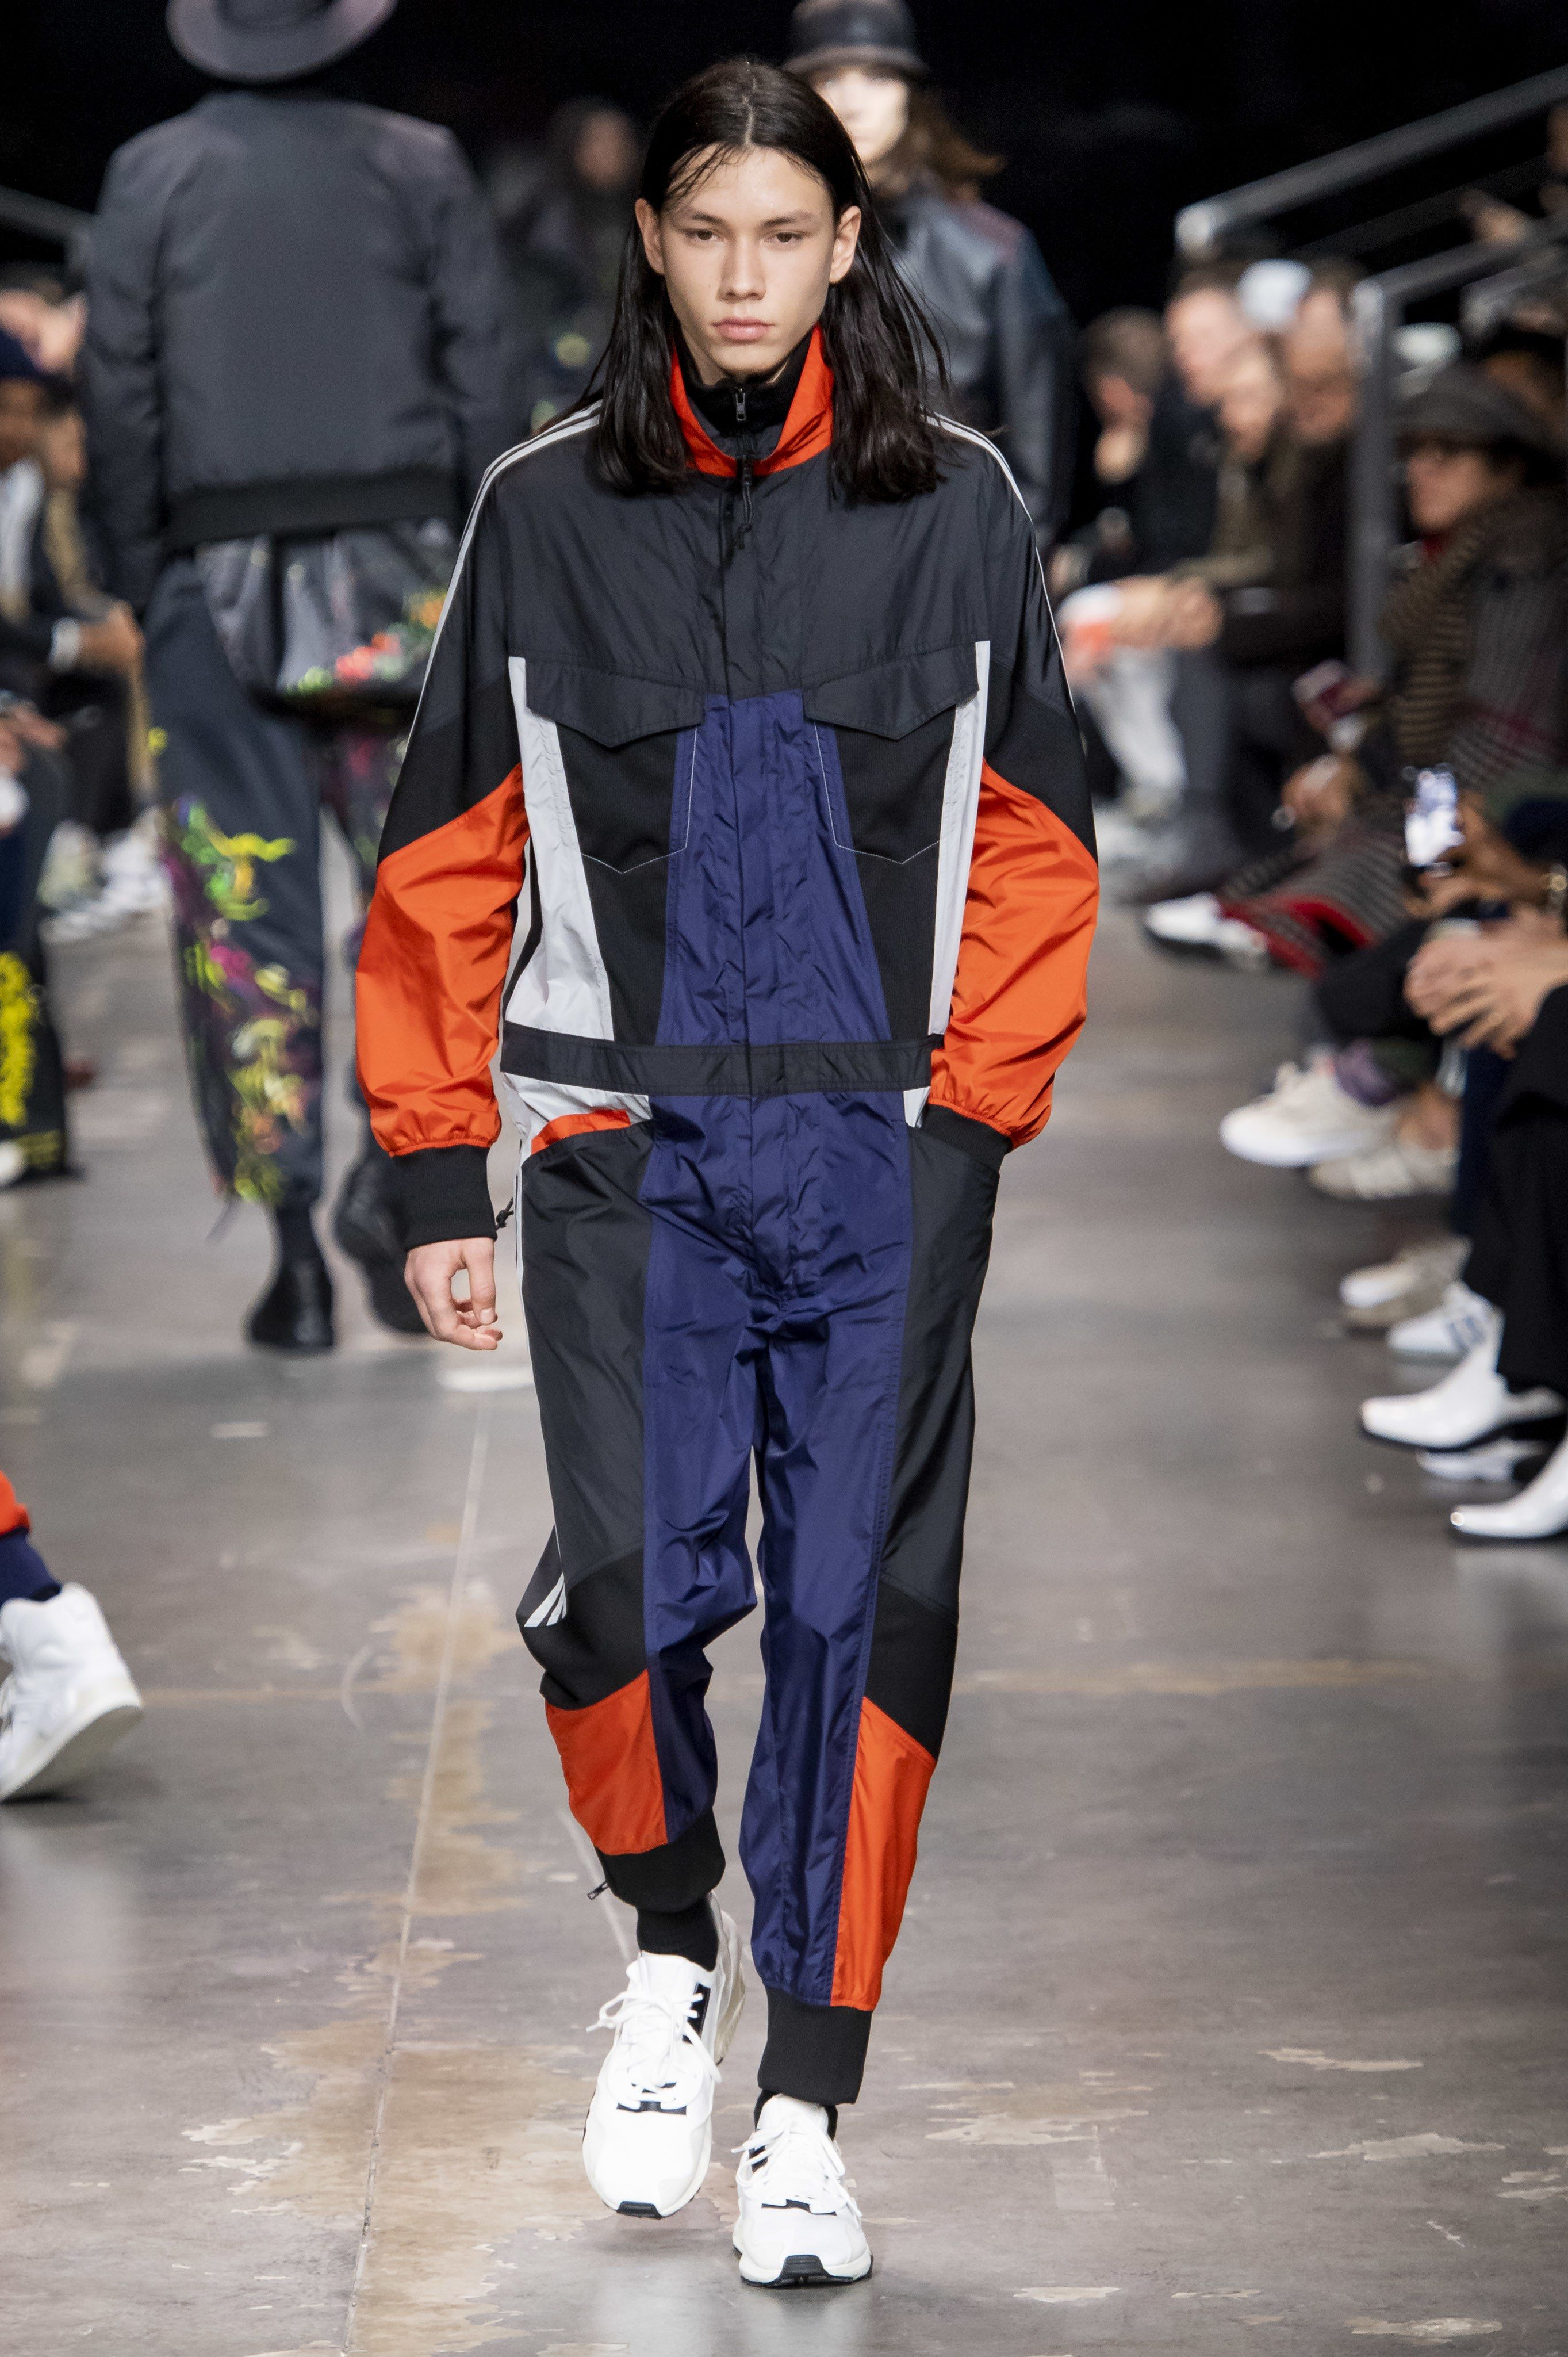 Y-3 Fall 2019 Ready-to-Wear Fashion Show Collection. Men fashon runway sportswear look outfit